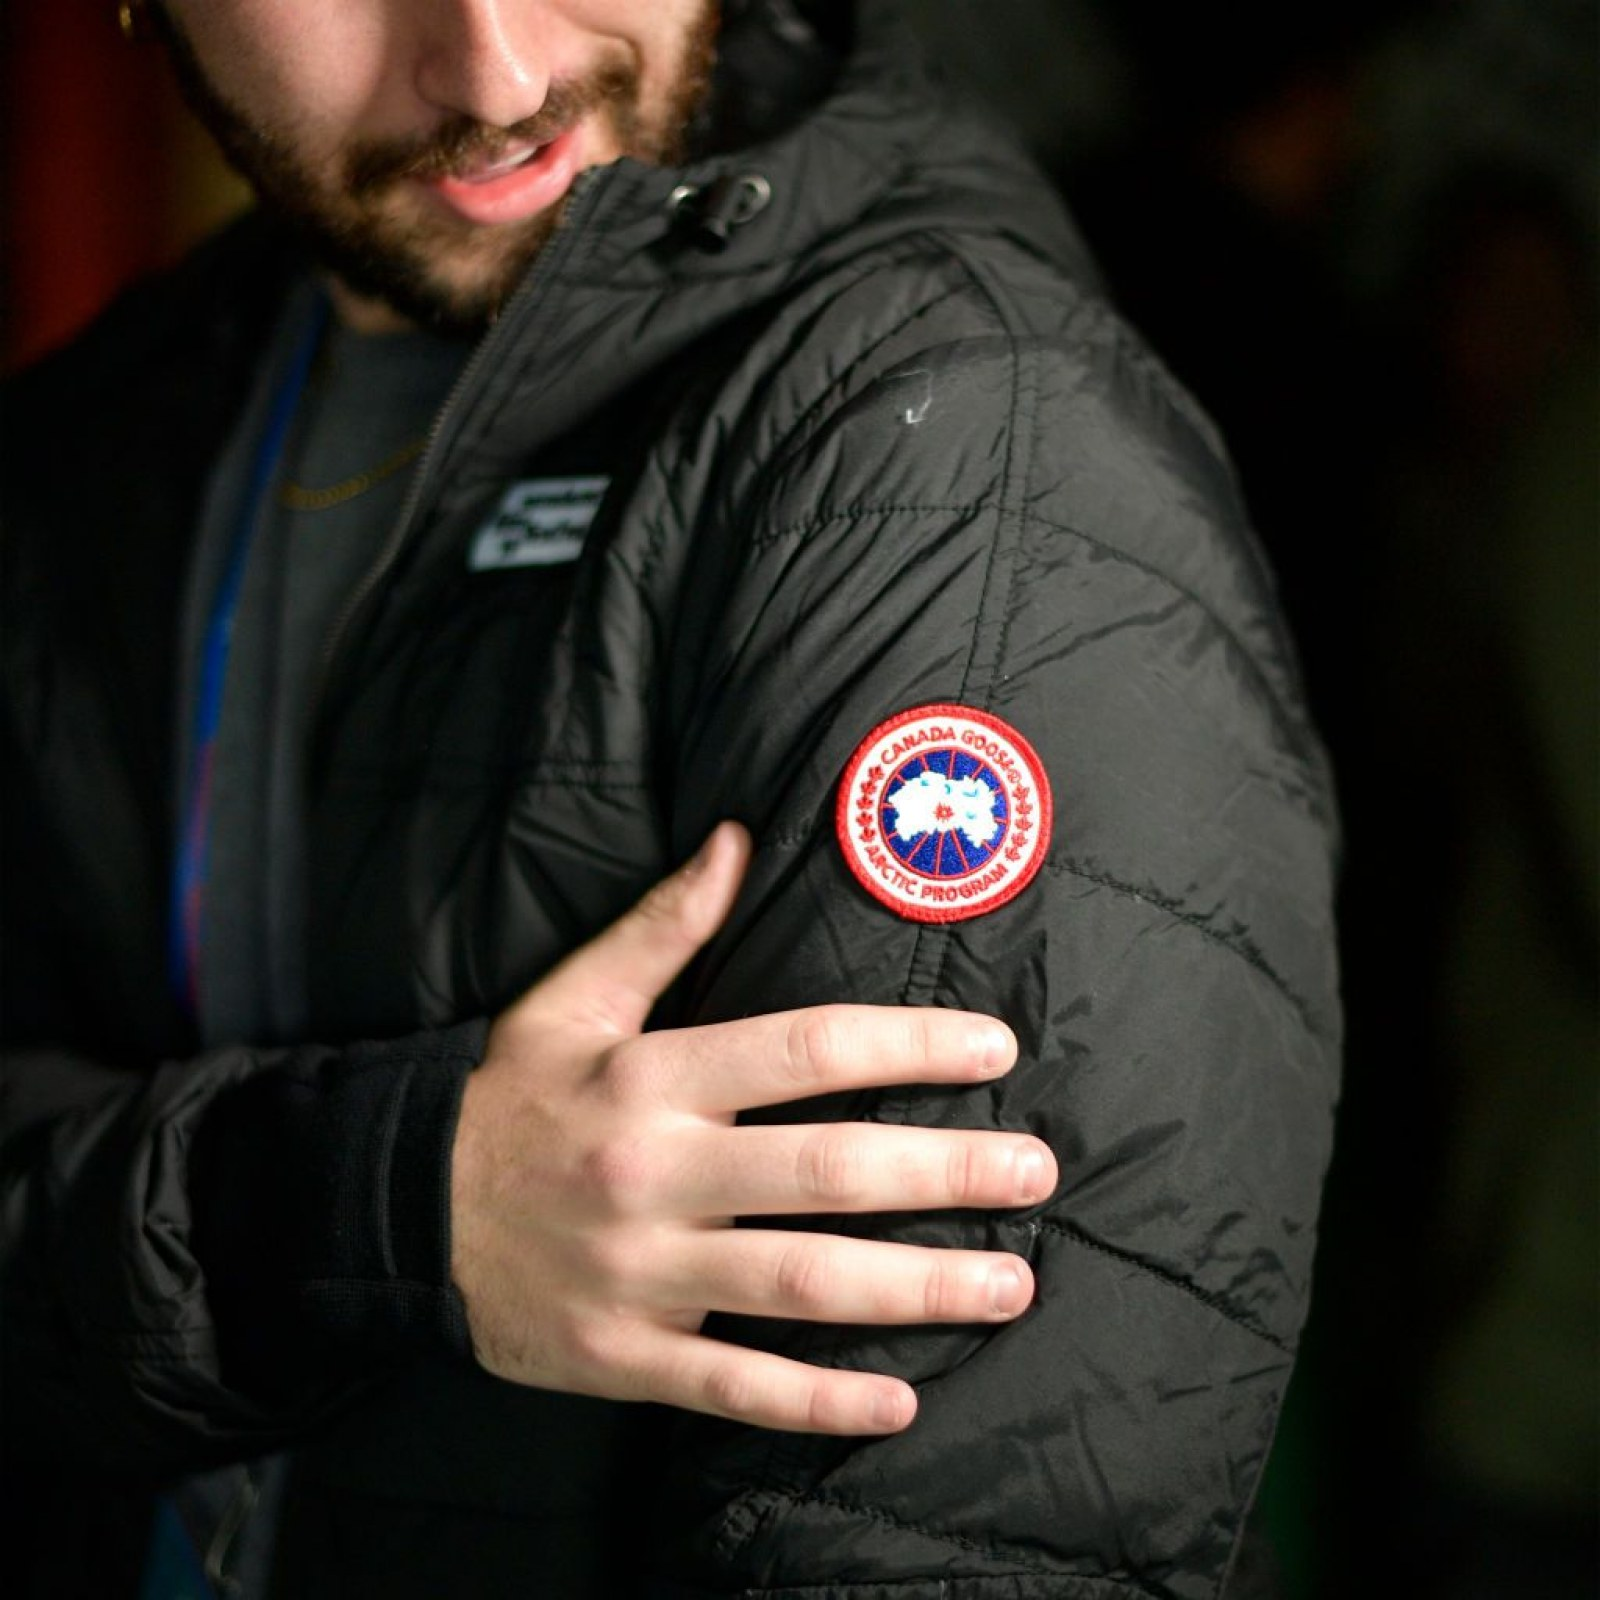 74b642c33 Are Canada Goose Jackets inhumane? The Controversy Explained